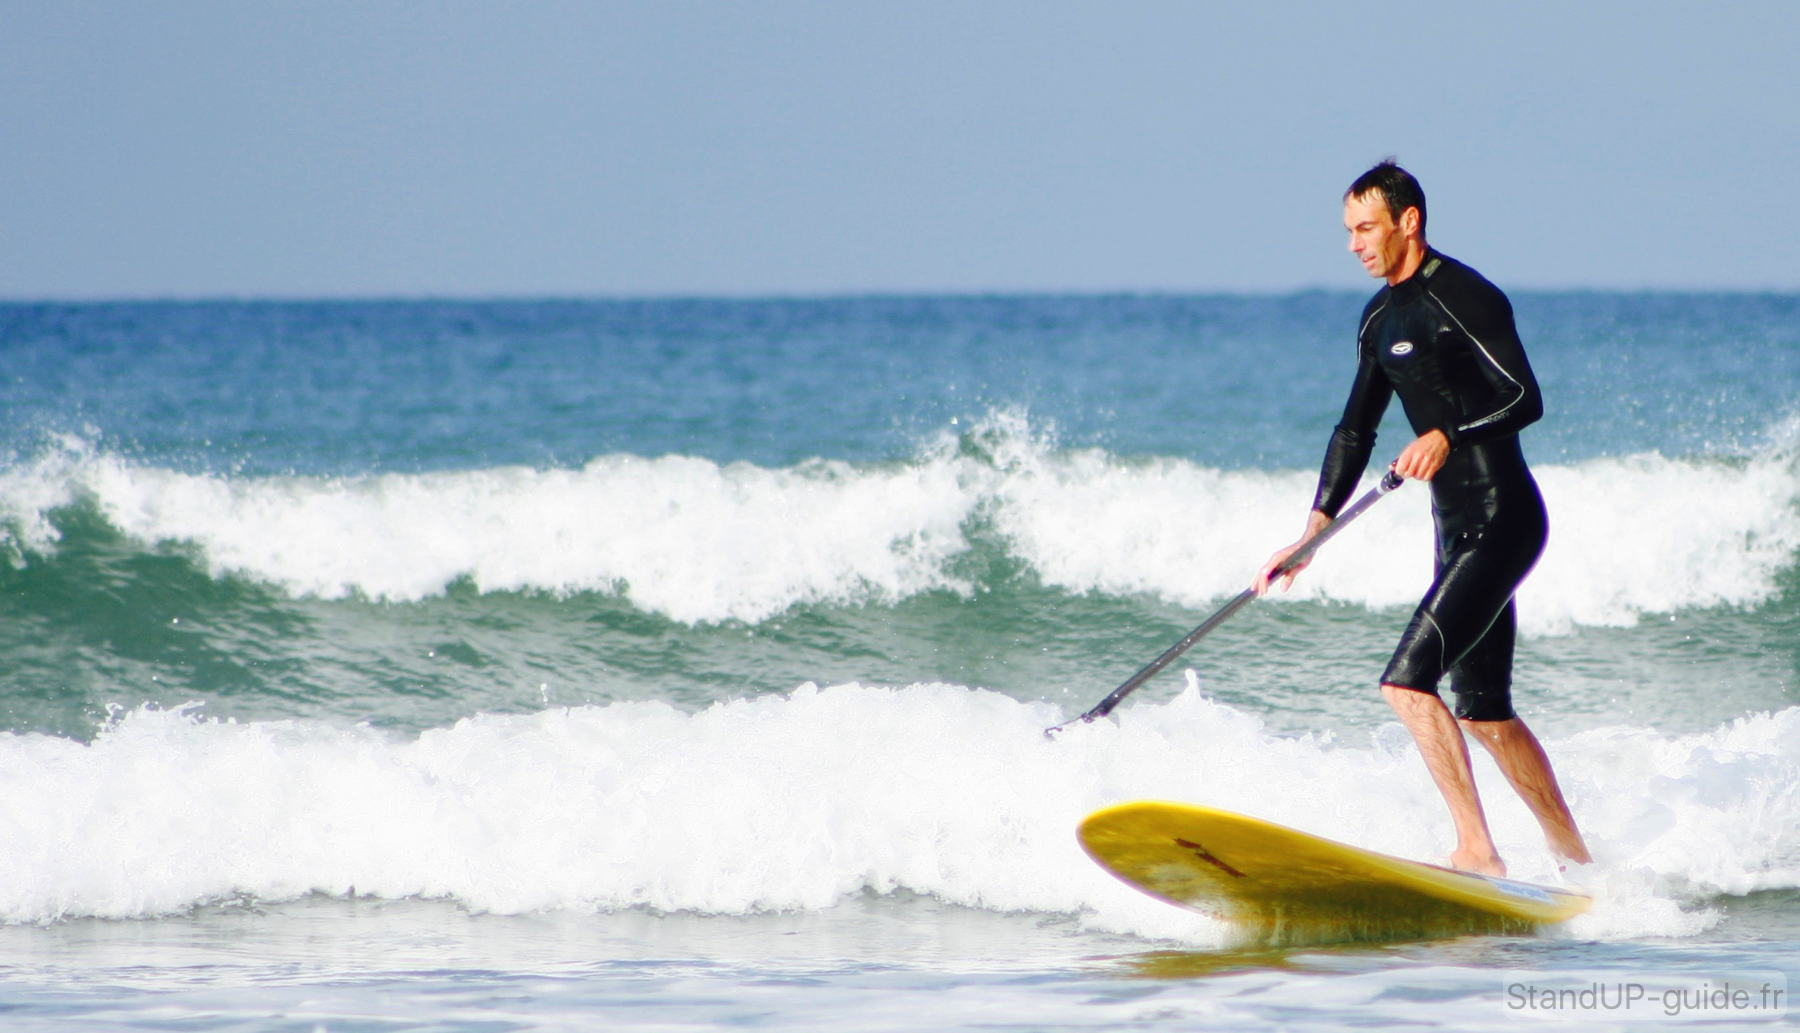 Surfer une vague en paddle